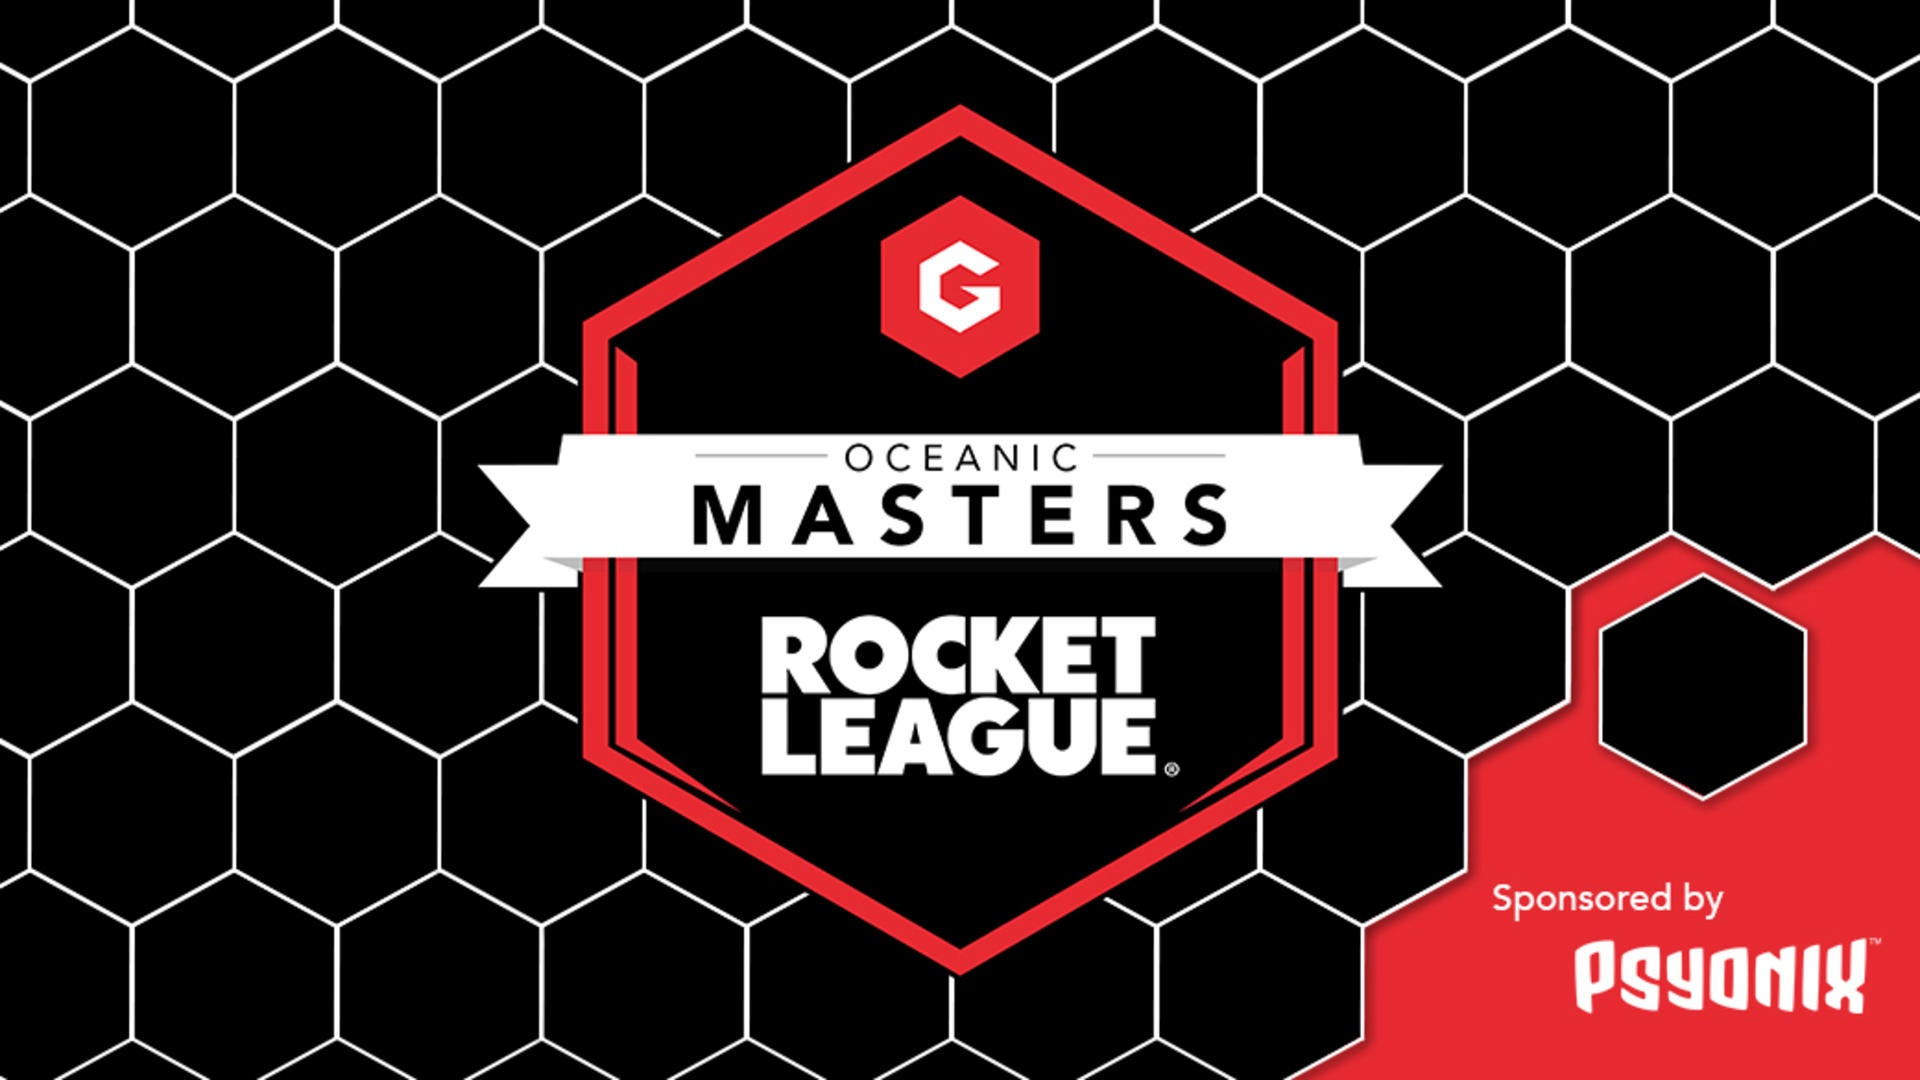 Introducing the Rocket League Oceanic Masters Image